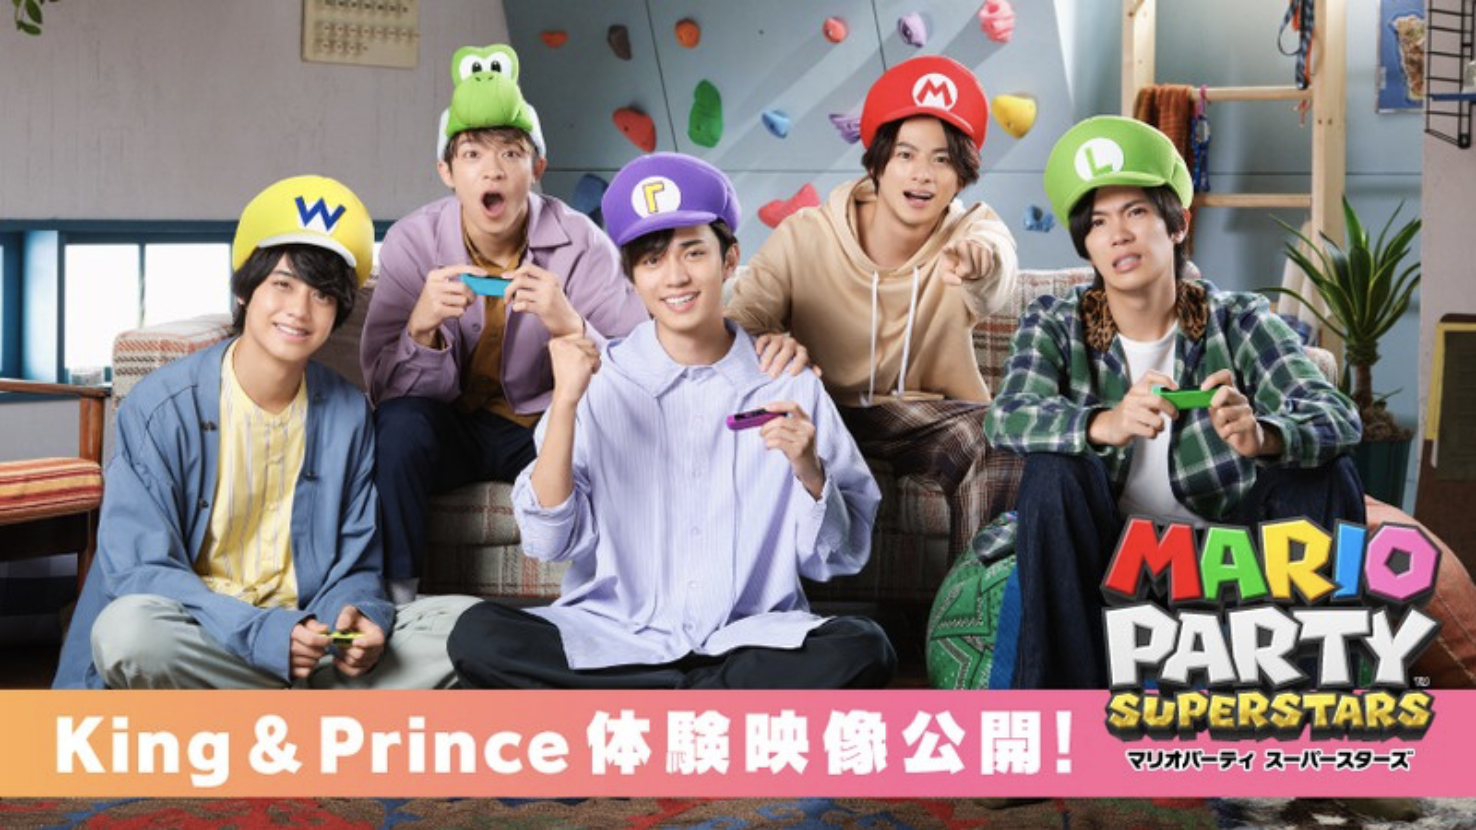 King & Prince Team Up With Nintendo Again for Mario Party Superstars